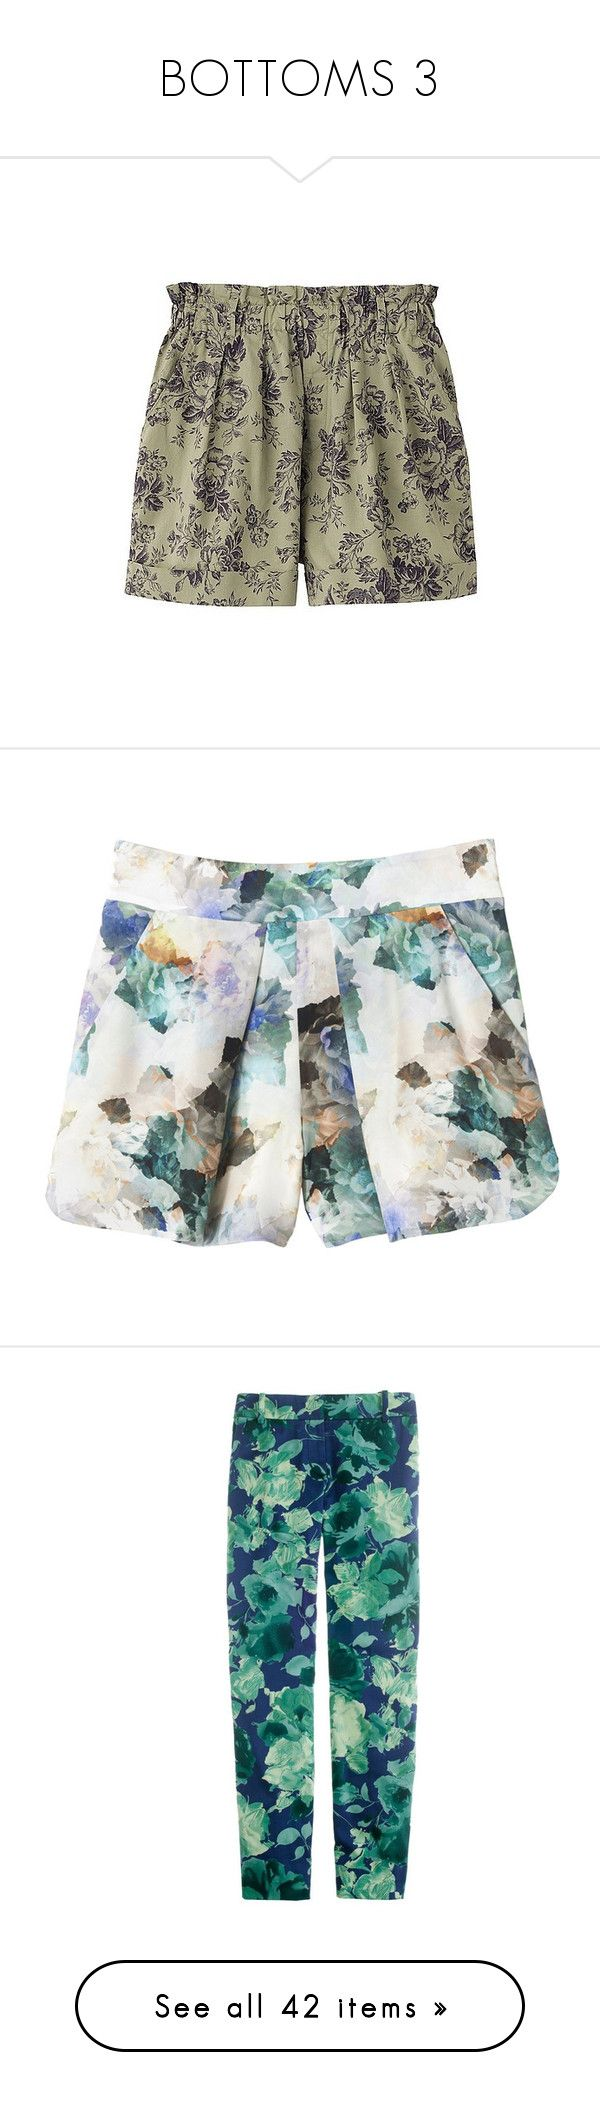 """BOTTOMS 3"" by littlewhitedaisy ❤ liked on Polyvore featuring shorts, bottoms, shorts/pants, uniqlo shorts, vintage shorts, flared shorts, flare shorts, uniqlo, skirts and pants"